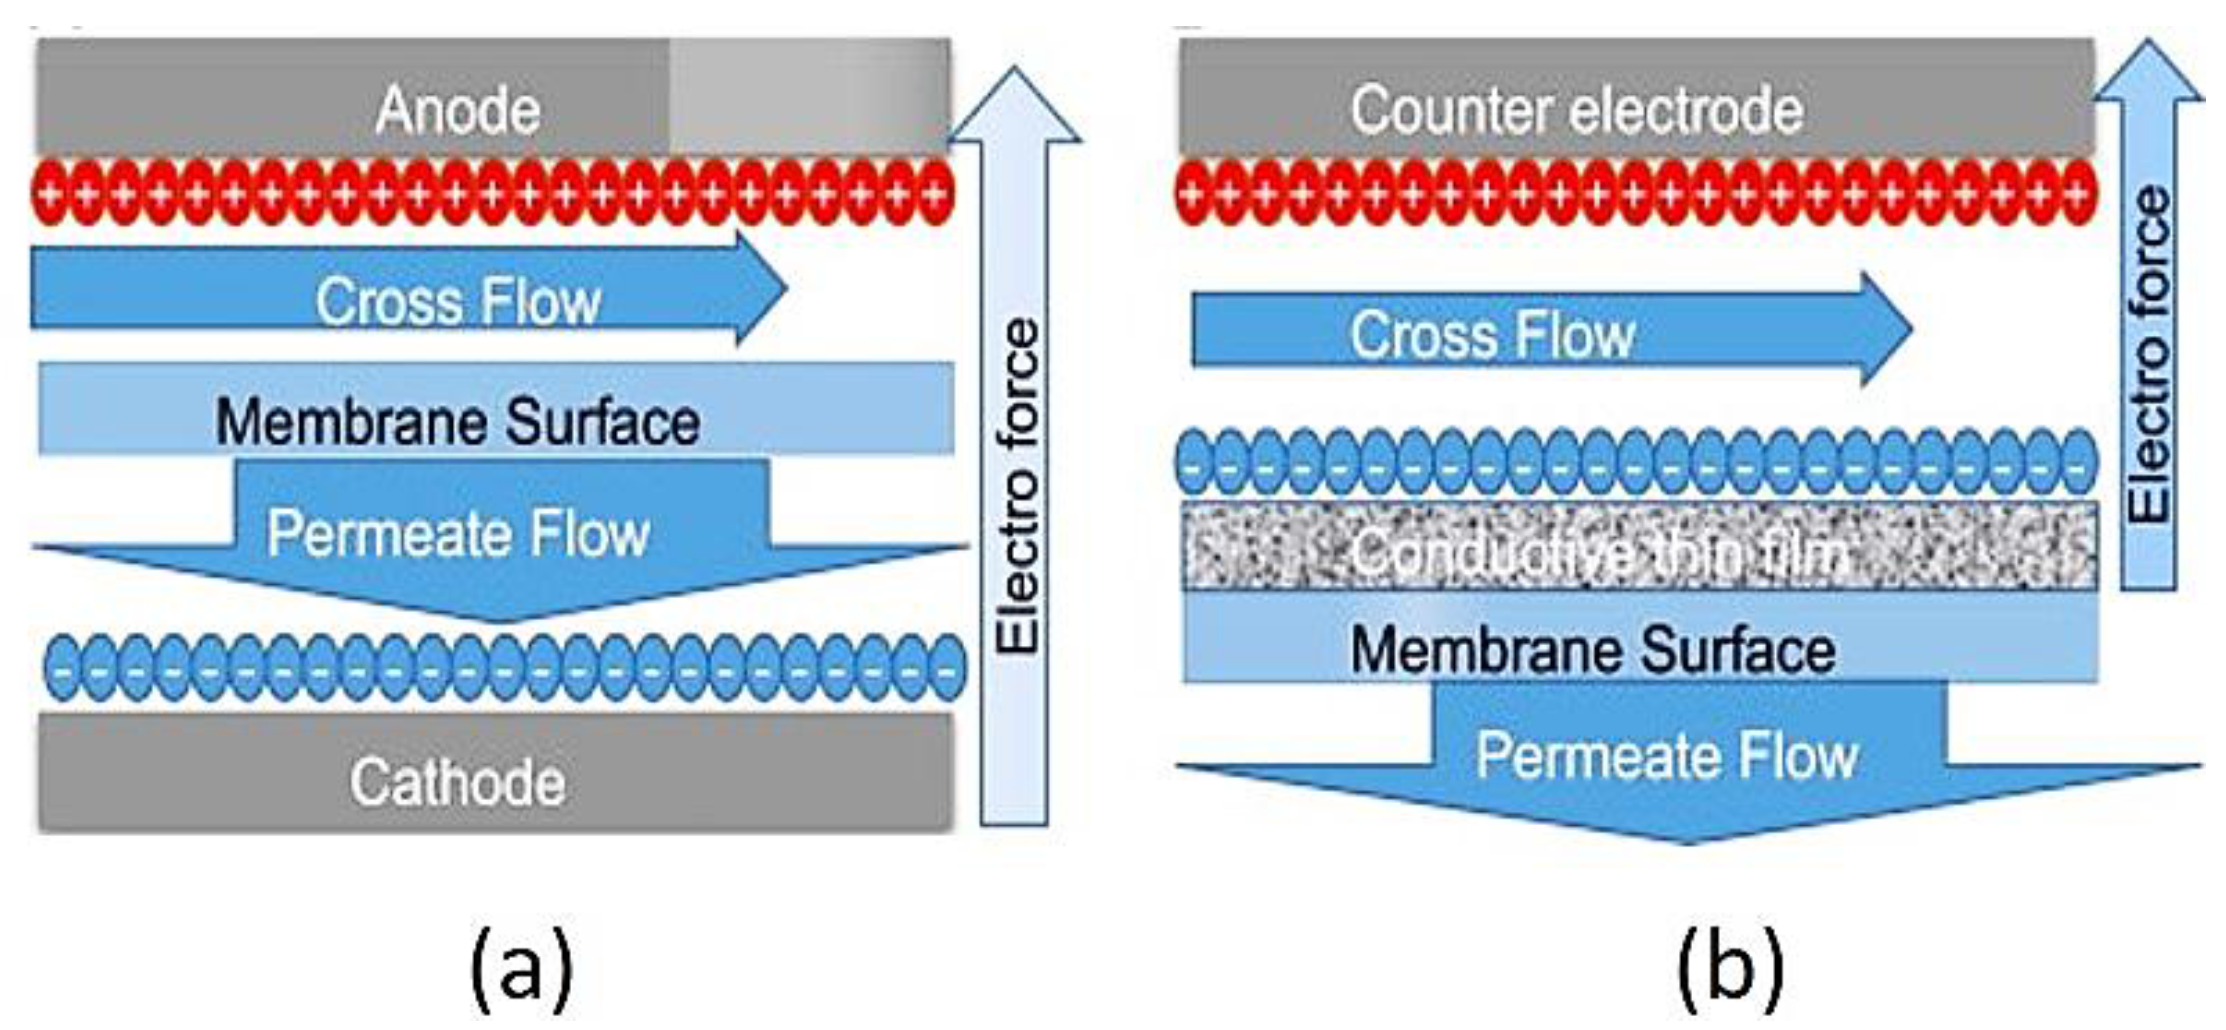 Membranes | Free Full-Text | Electro-Conductive Membranes for ...